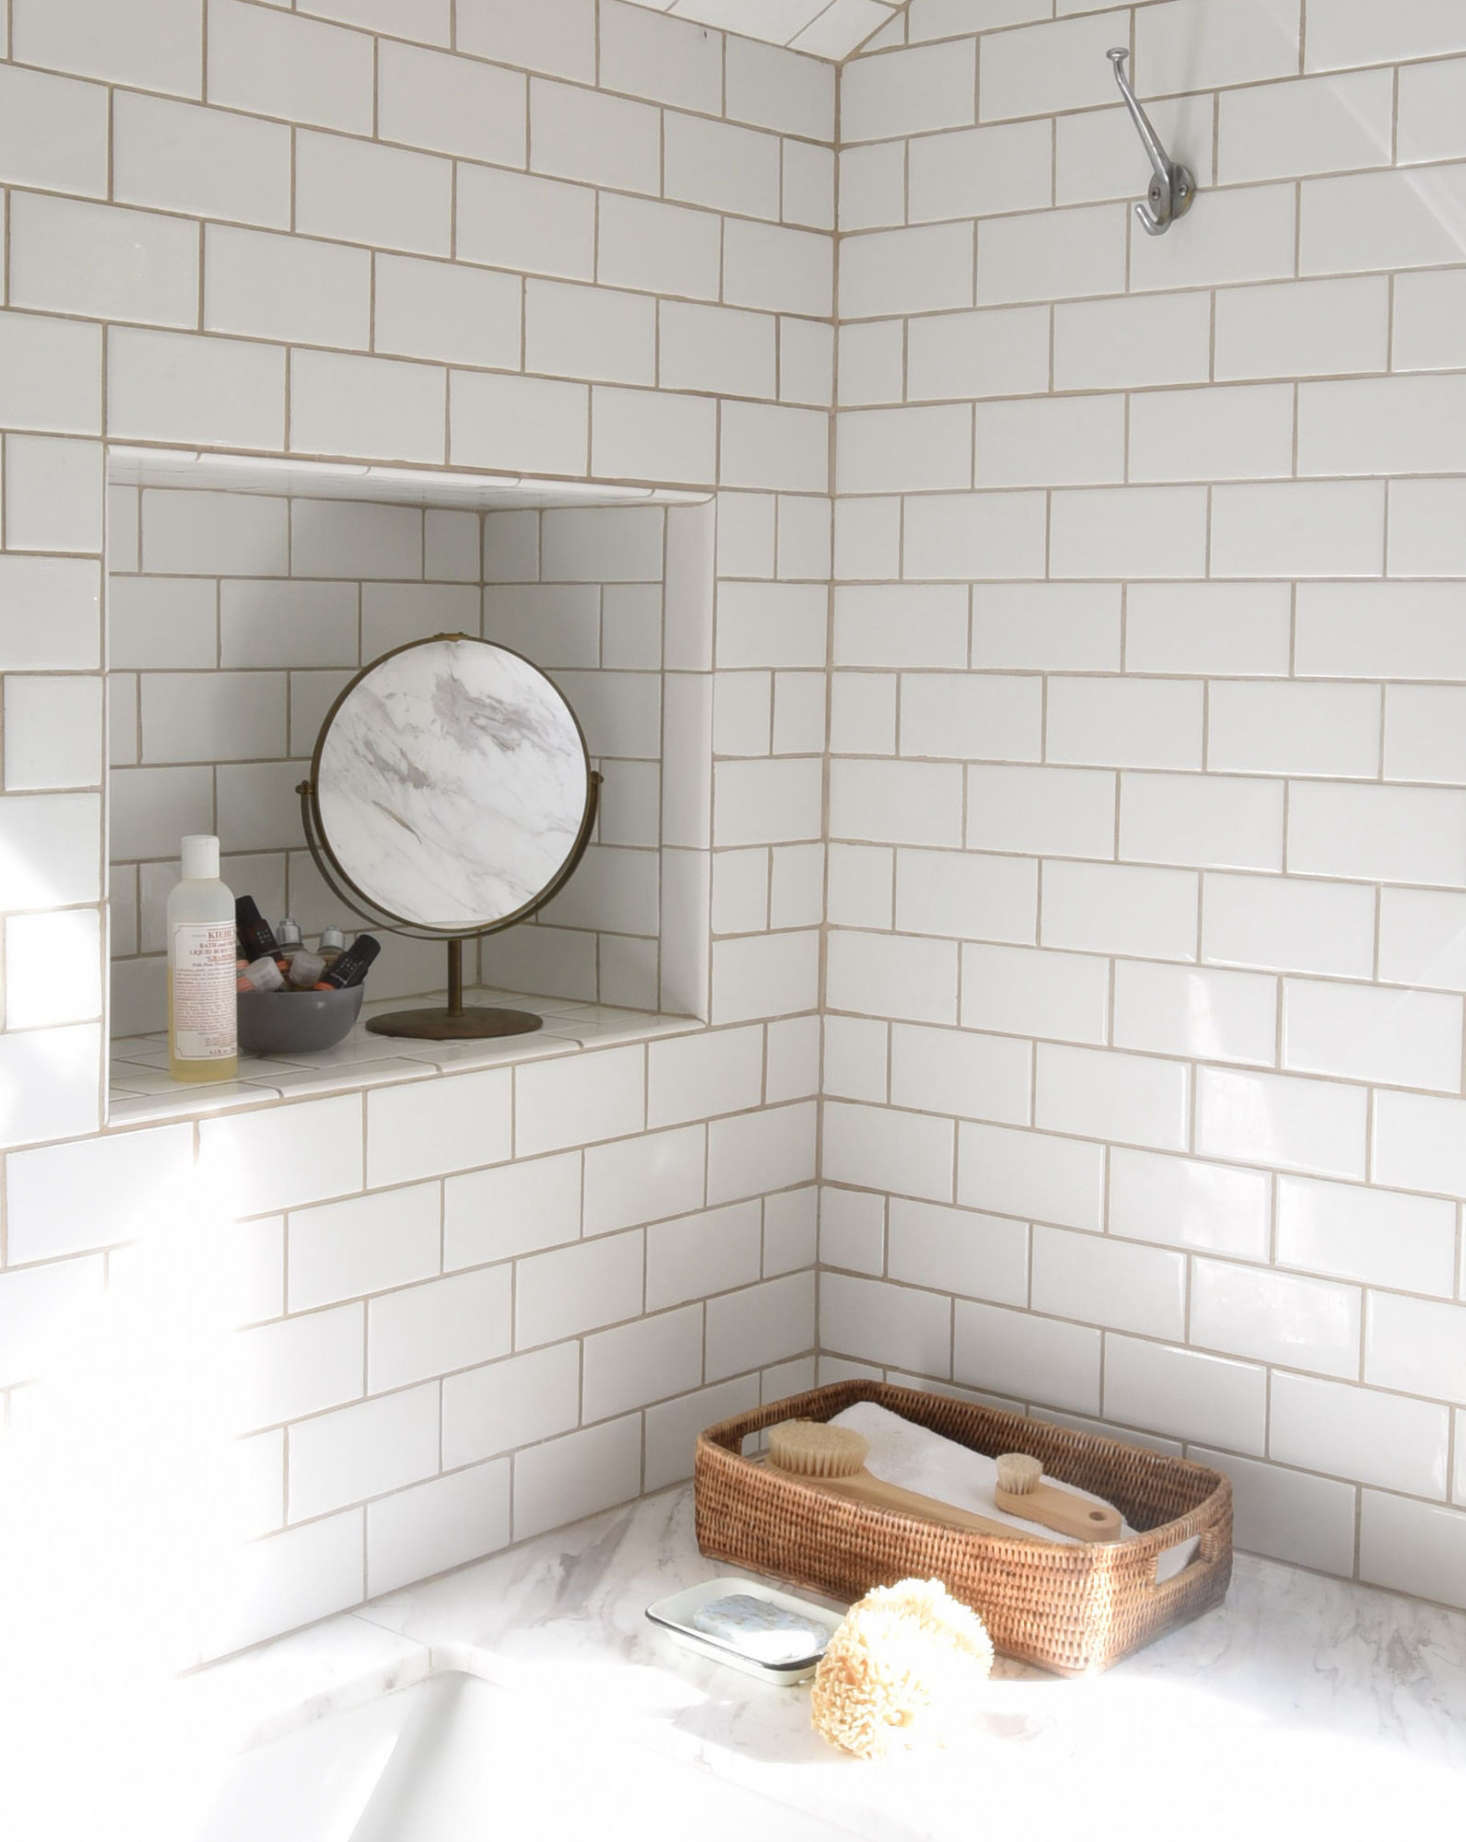 10 Things Nobody Tells You About Clawfoot Bathtubs Remodelista